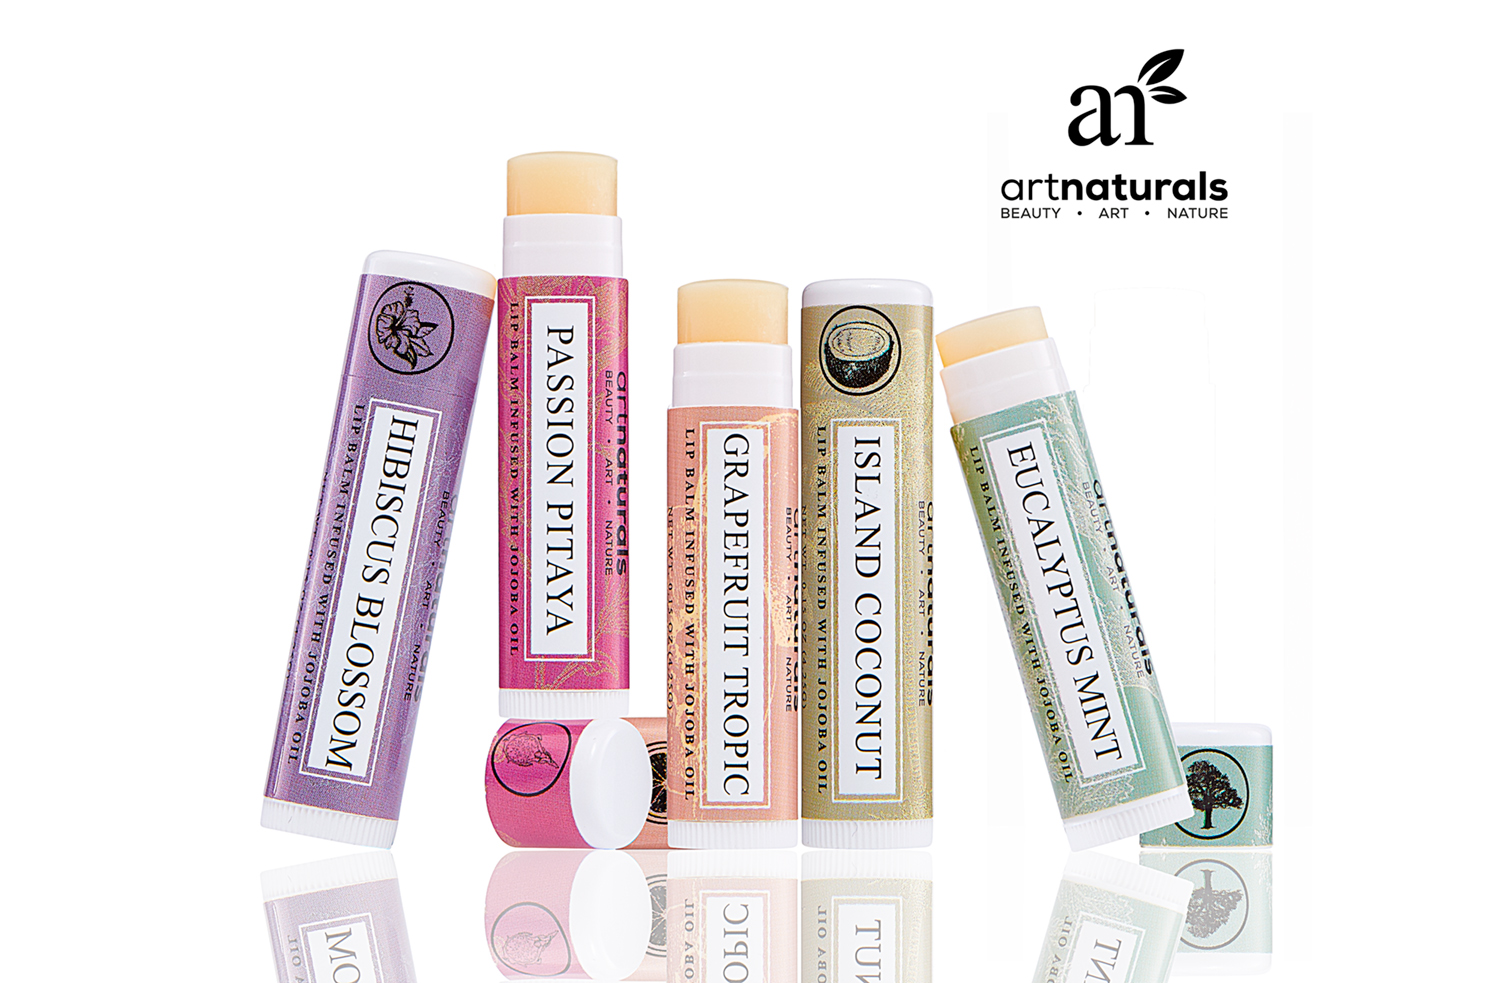 Dallas_FortWorth_Product_Photographers_Beauty_Products_makeup_product_photography_artnaturals.jpg